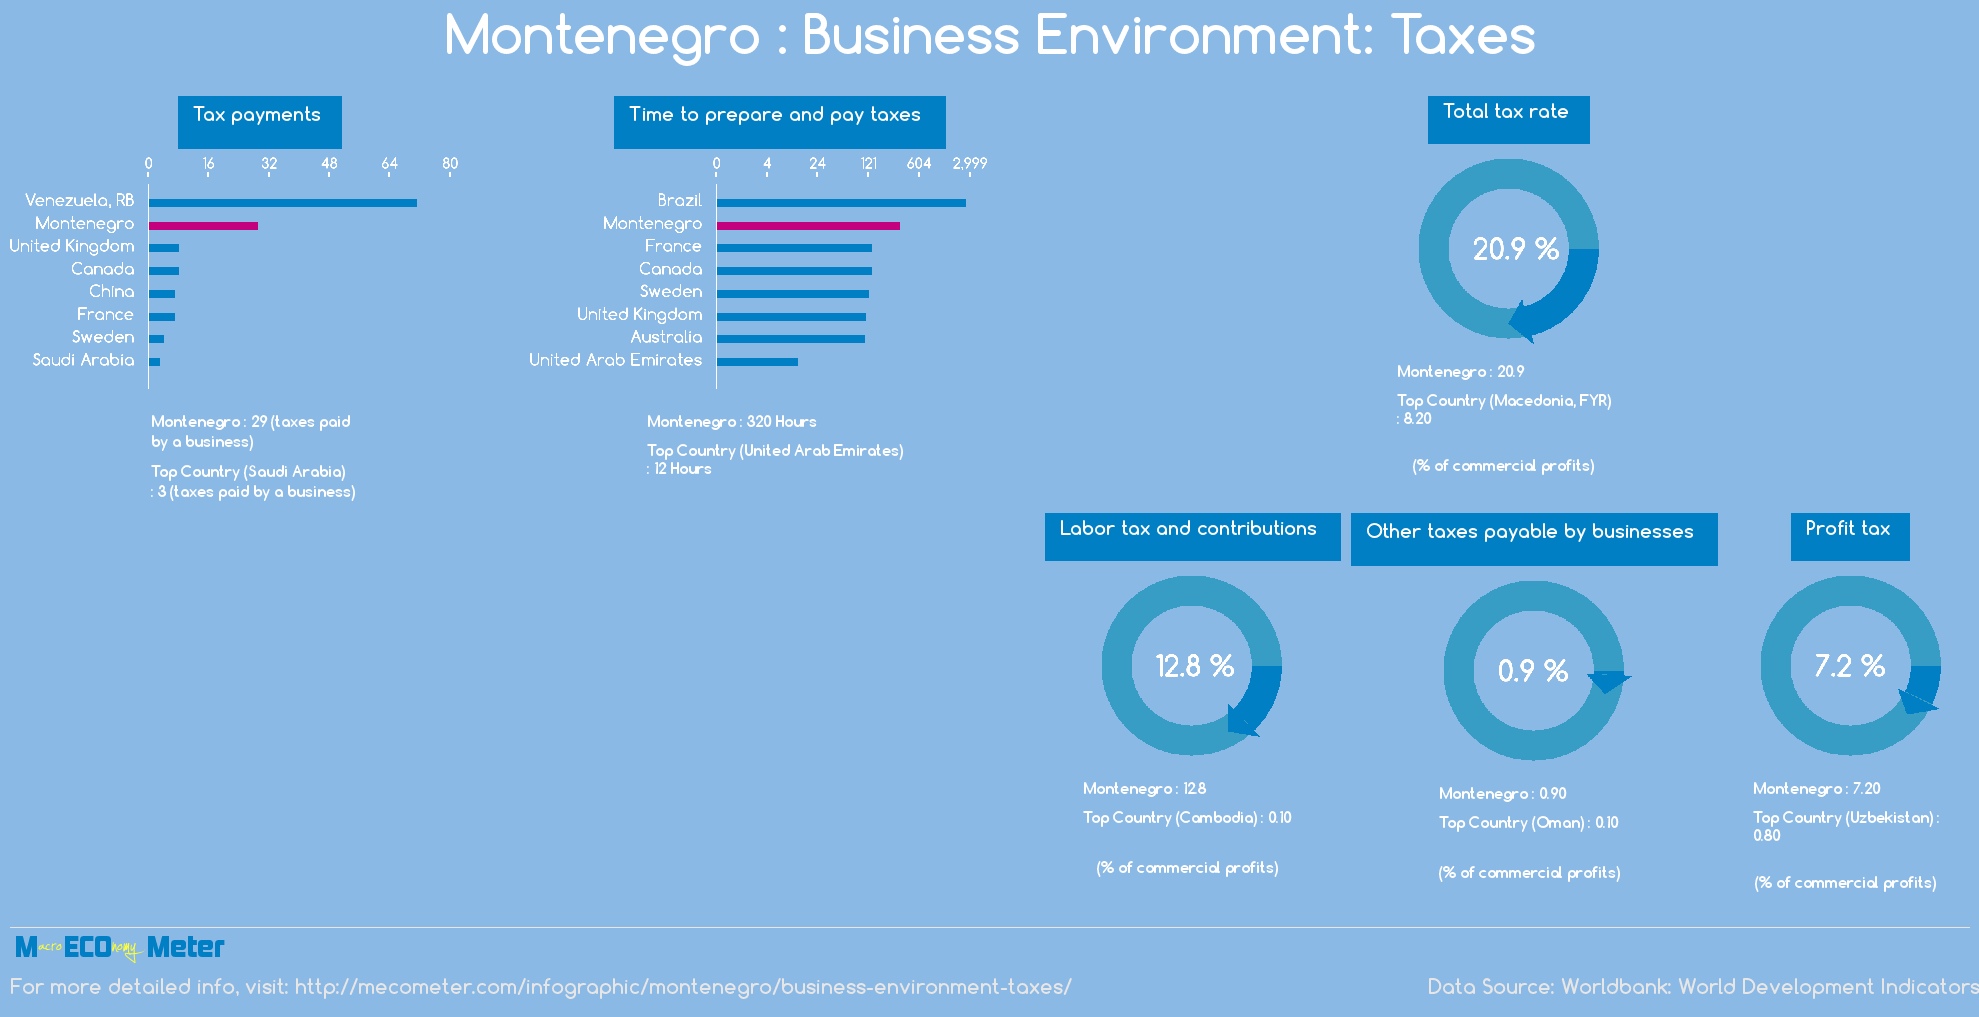 Montenegro : Business Environment: Taxes